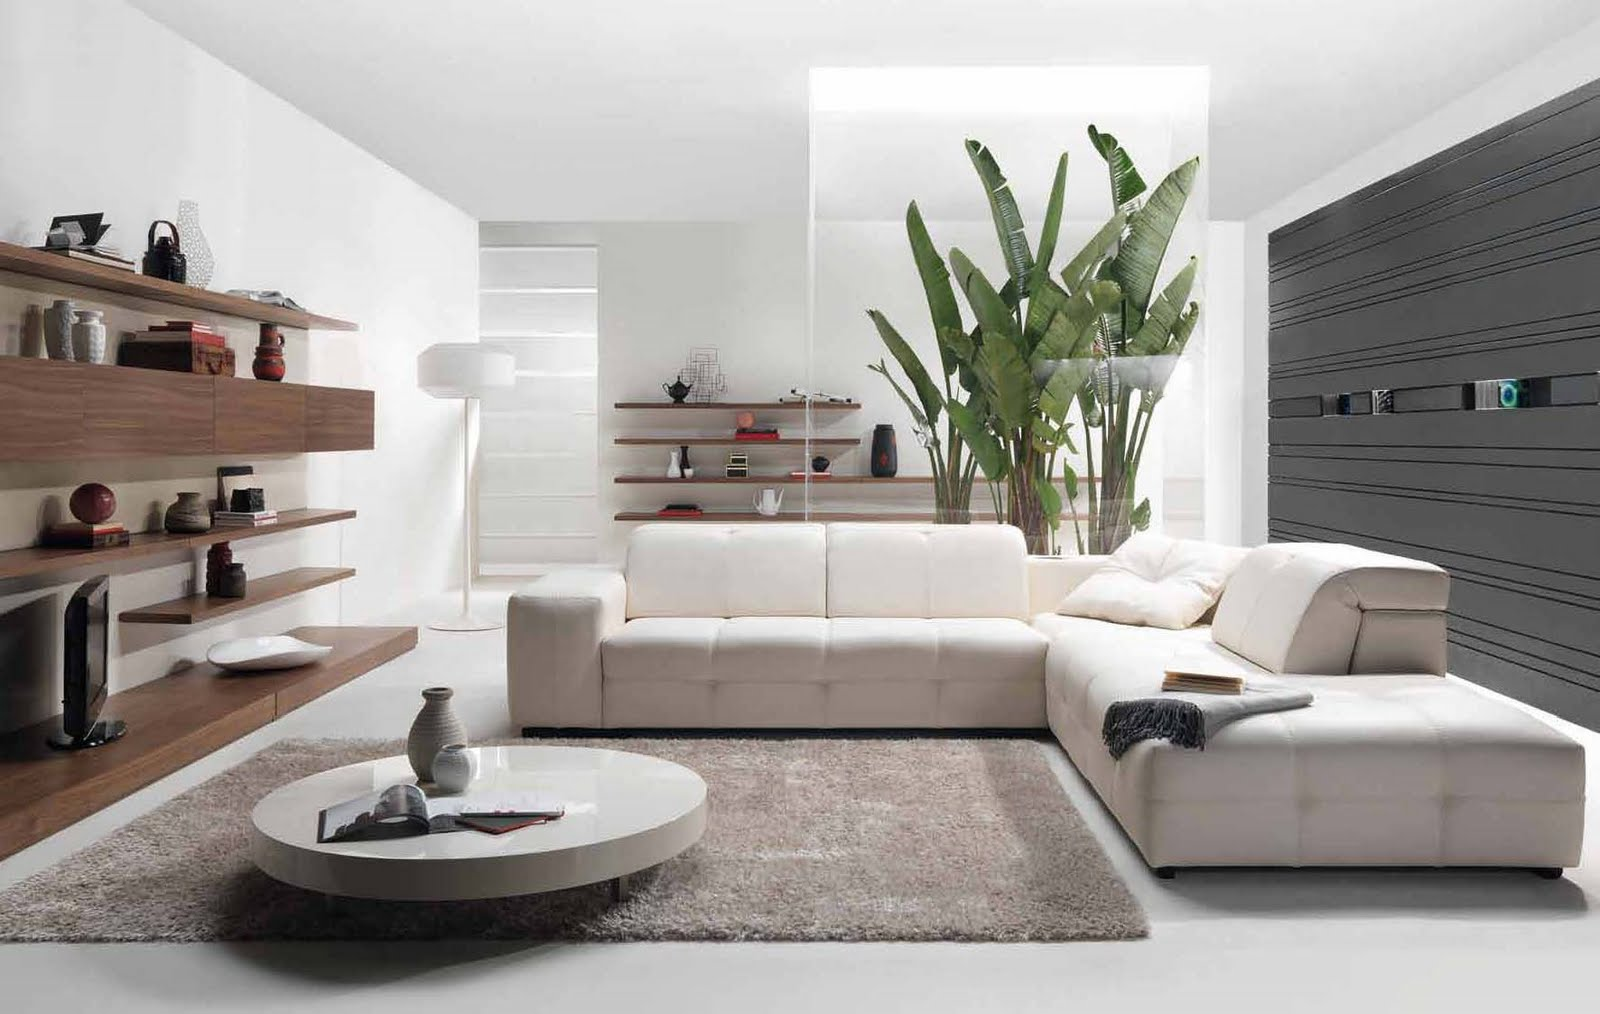 Future house design modern living room interior design for House living room ideas